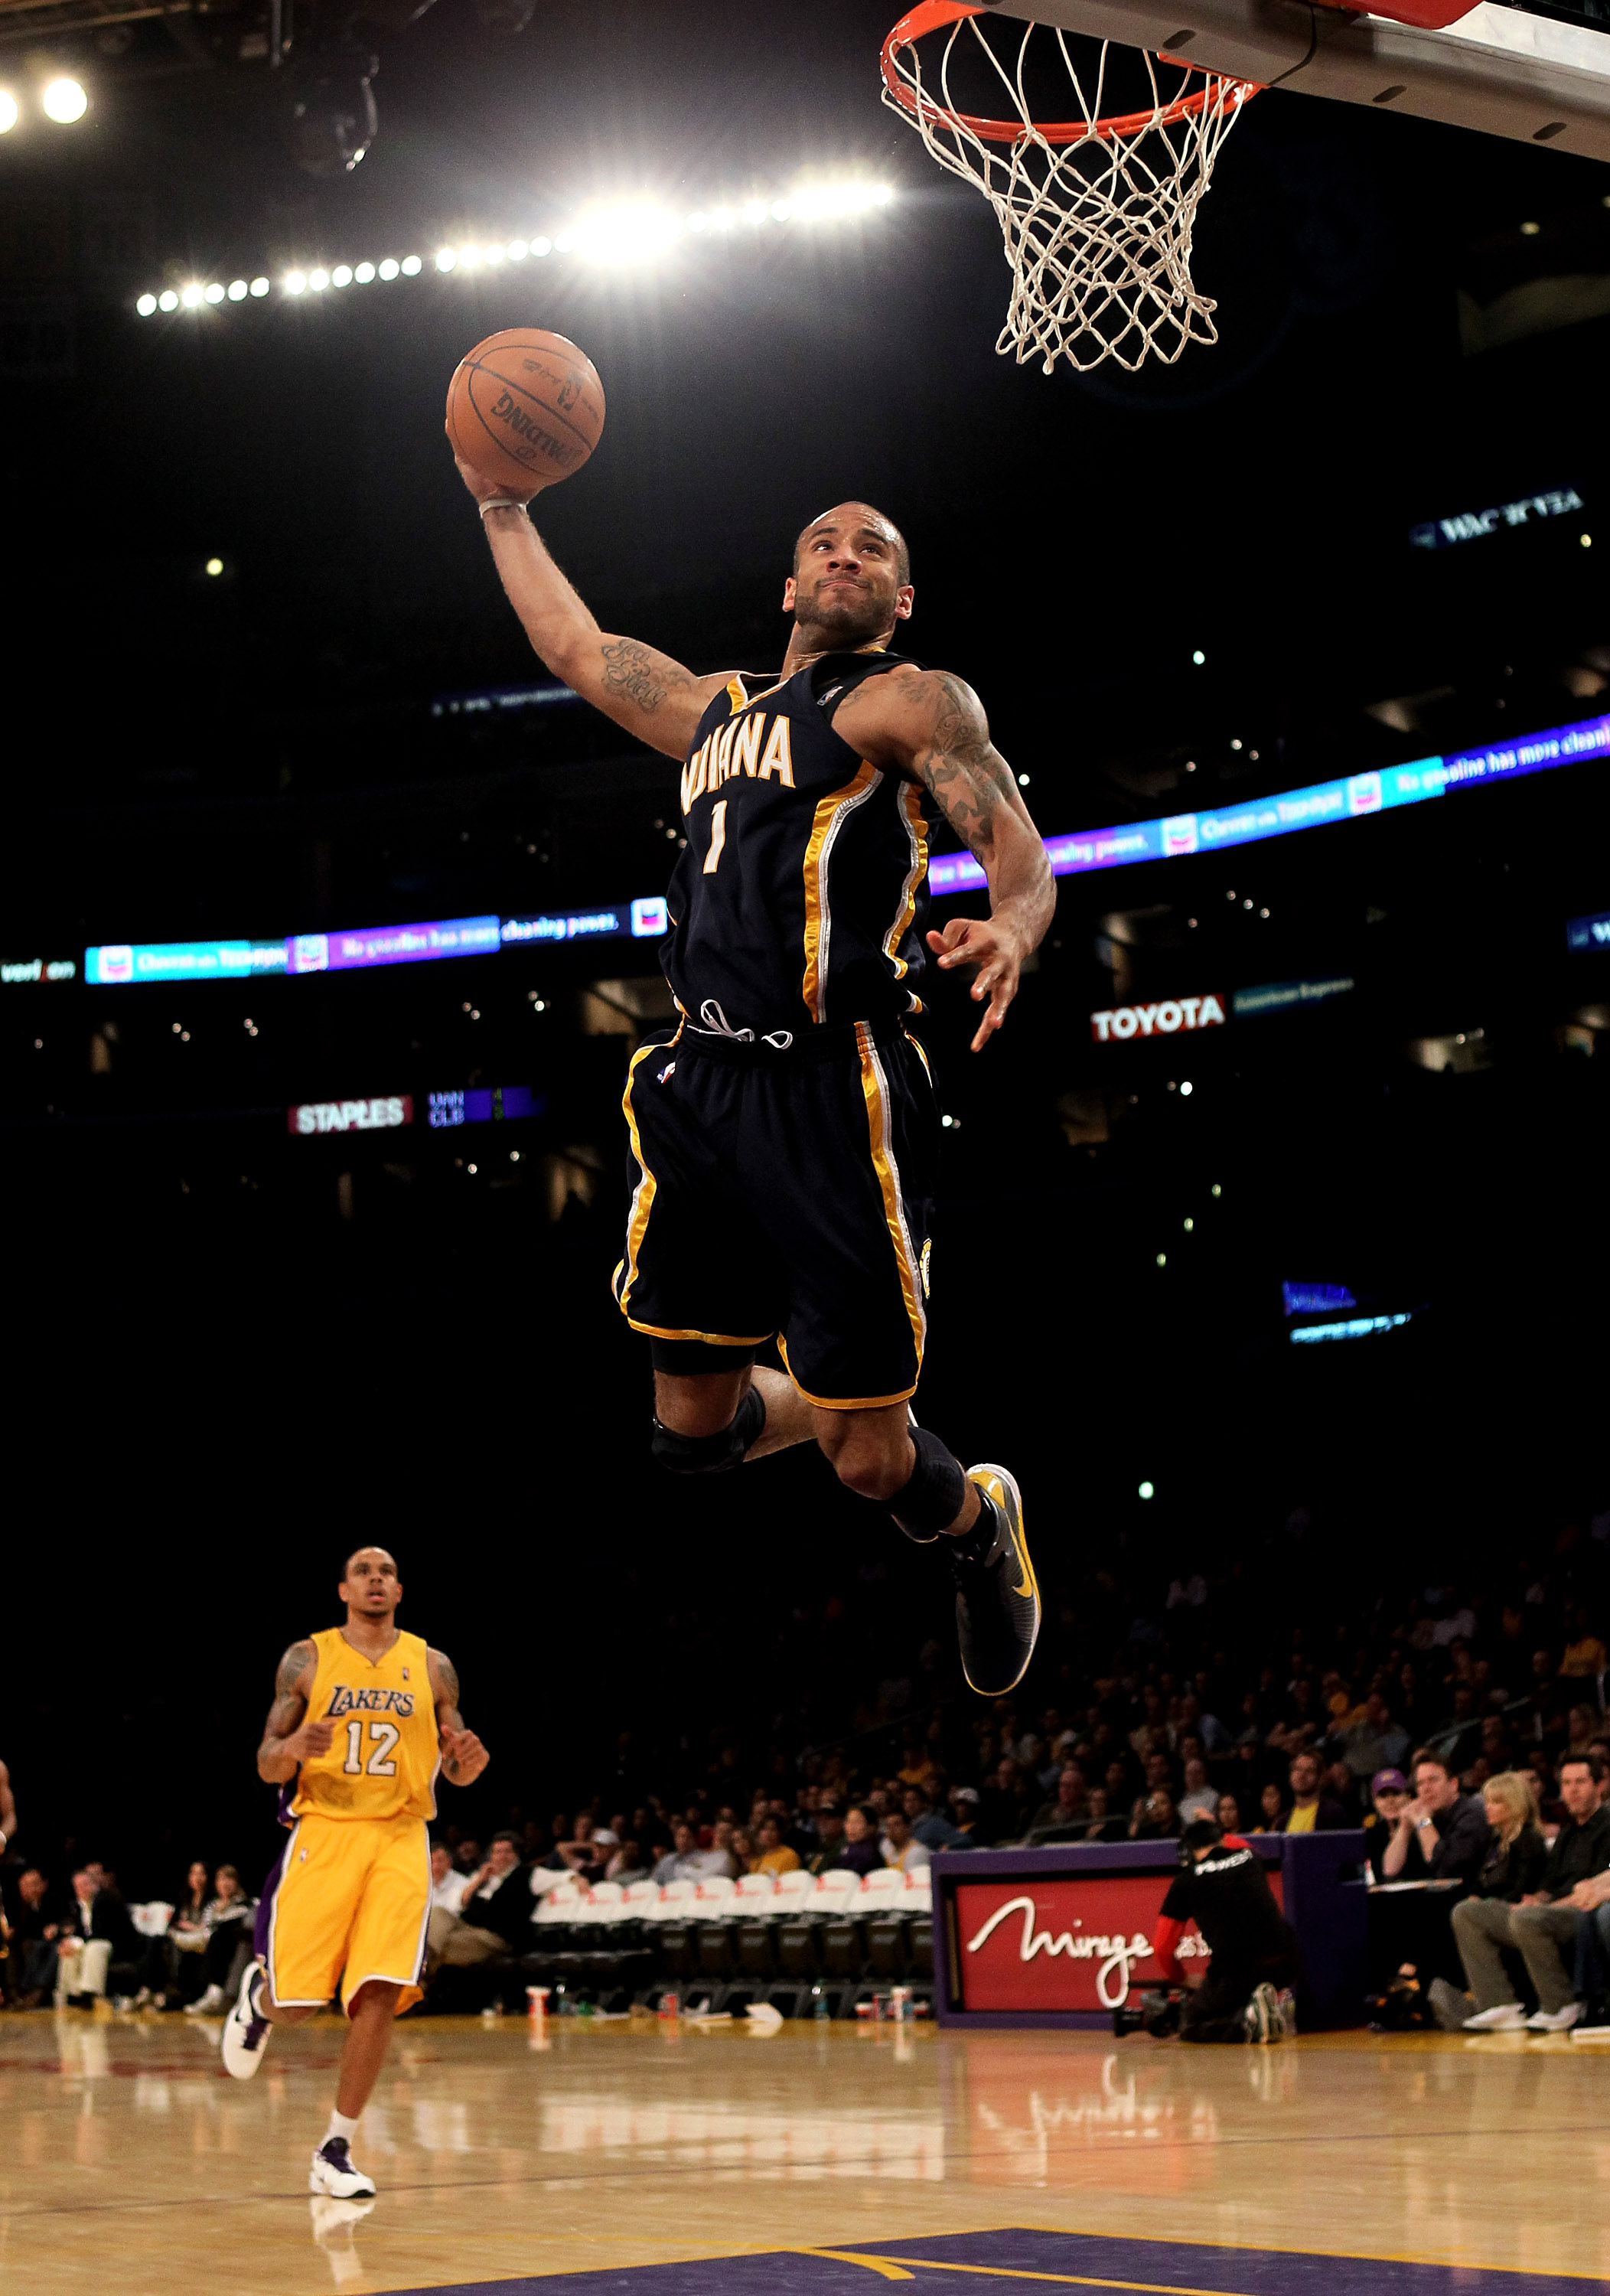 LOS ANGELES, CA - MARCH 02:  Dahntay Jones #1 of the Indiana Pacers goes up for a breakaway dunk against the Los Angeles Lakers on March 2, 2010 at Staples Center in Los Angeles, California. The Lakers won 122-99.  NOTE TO USER: User expressly acknowledge